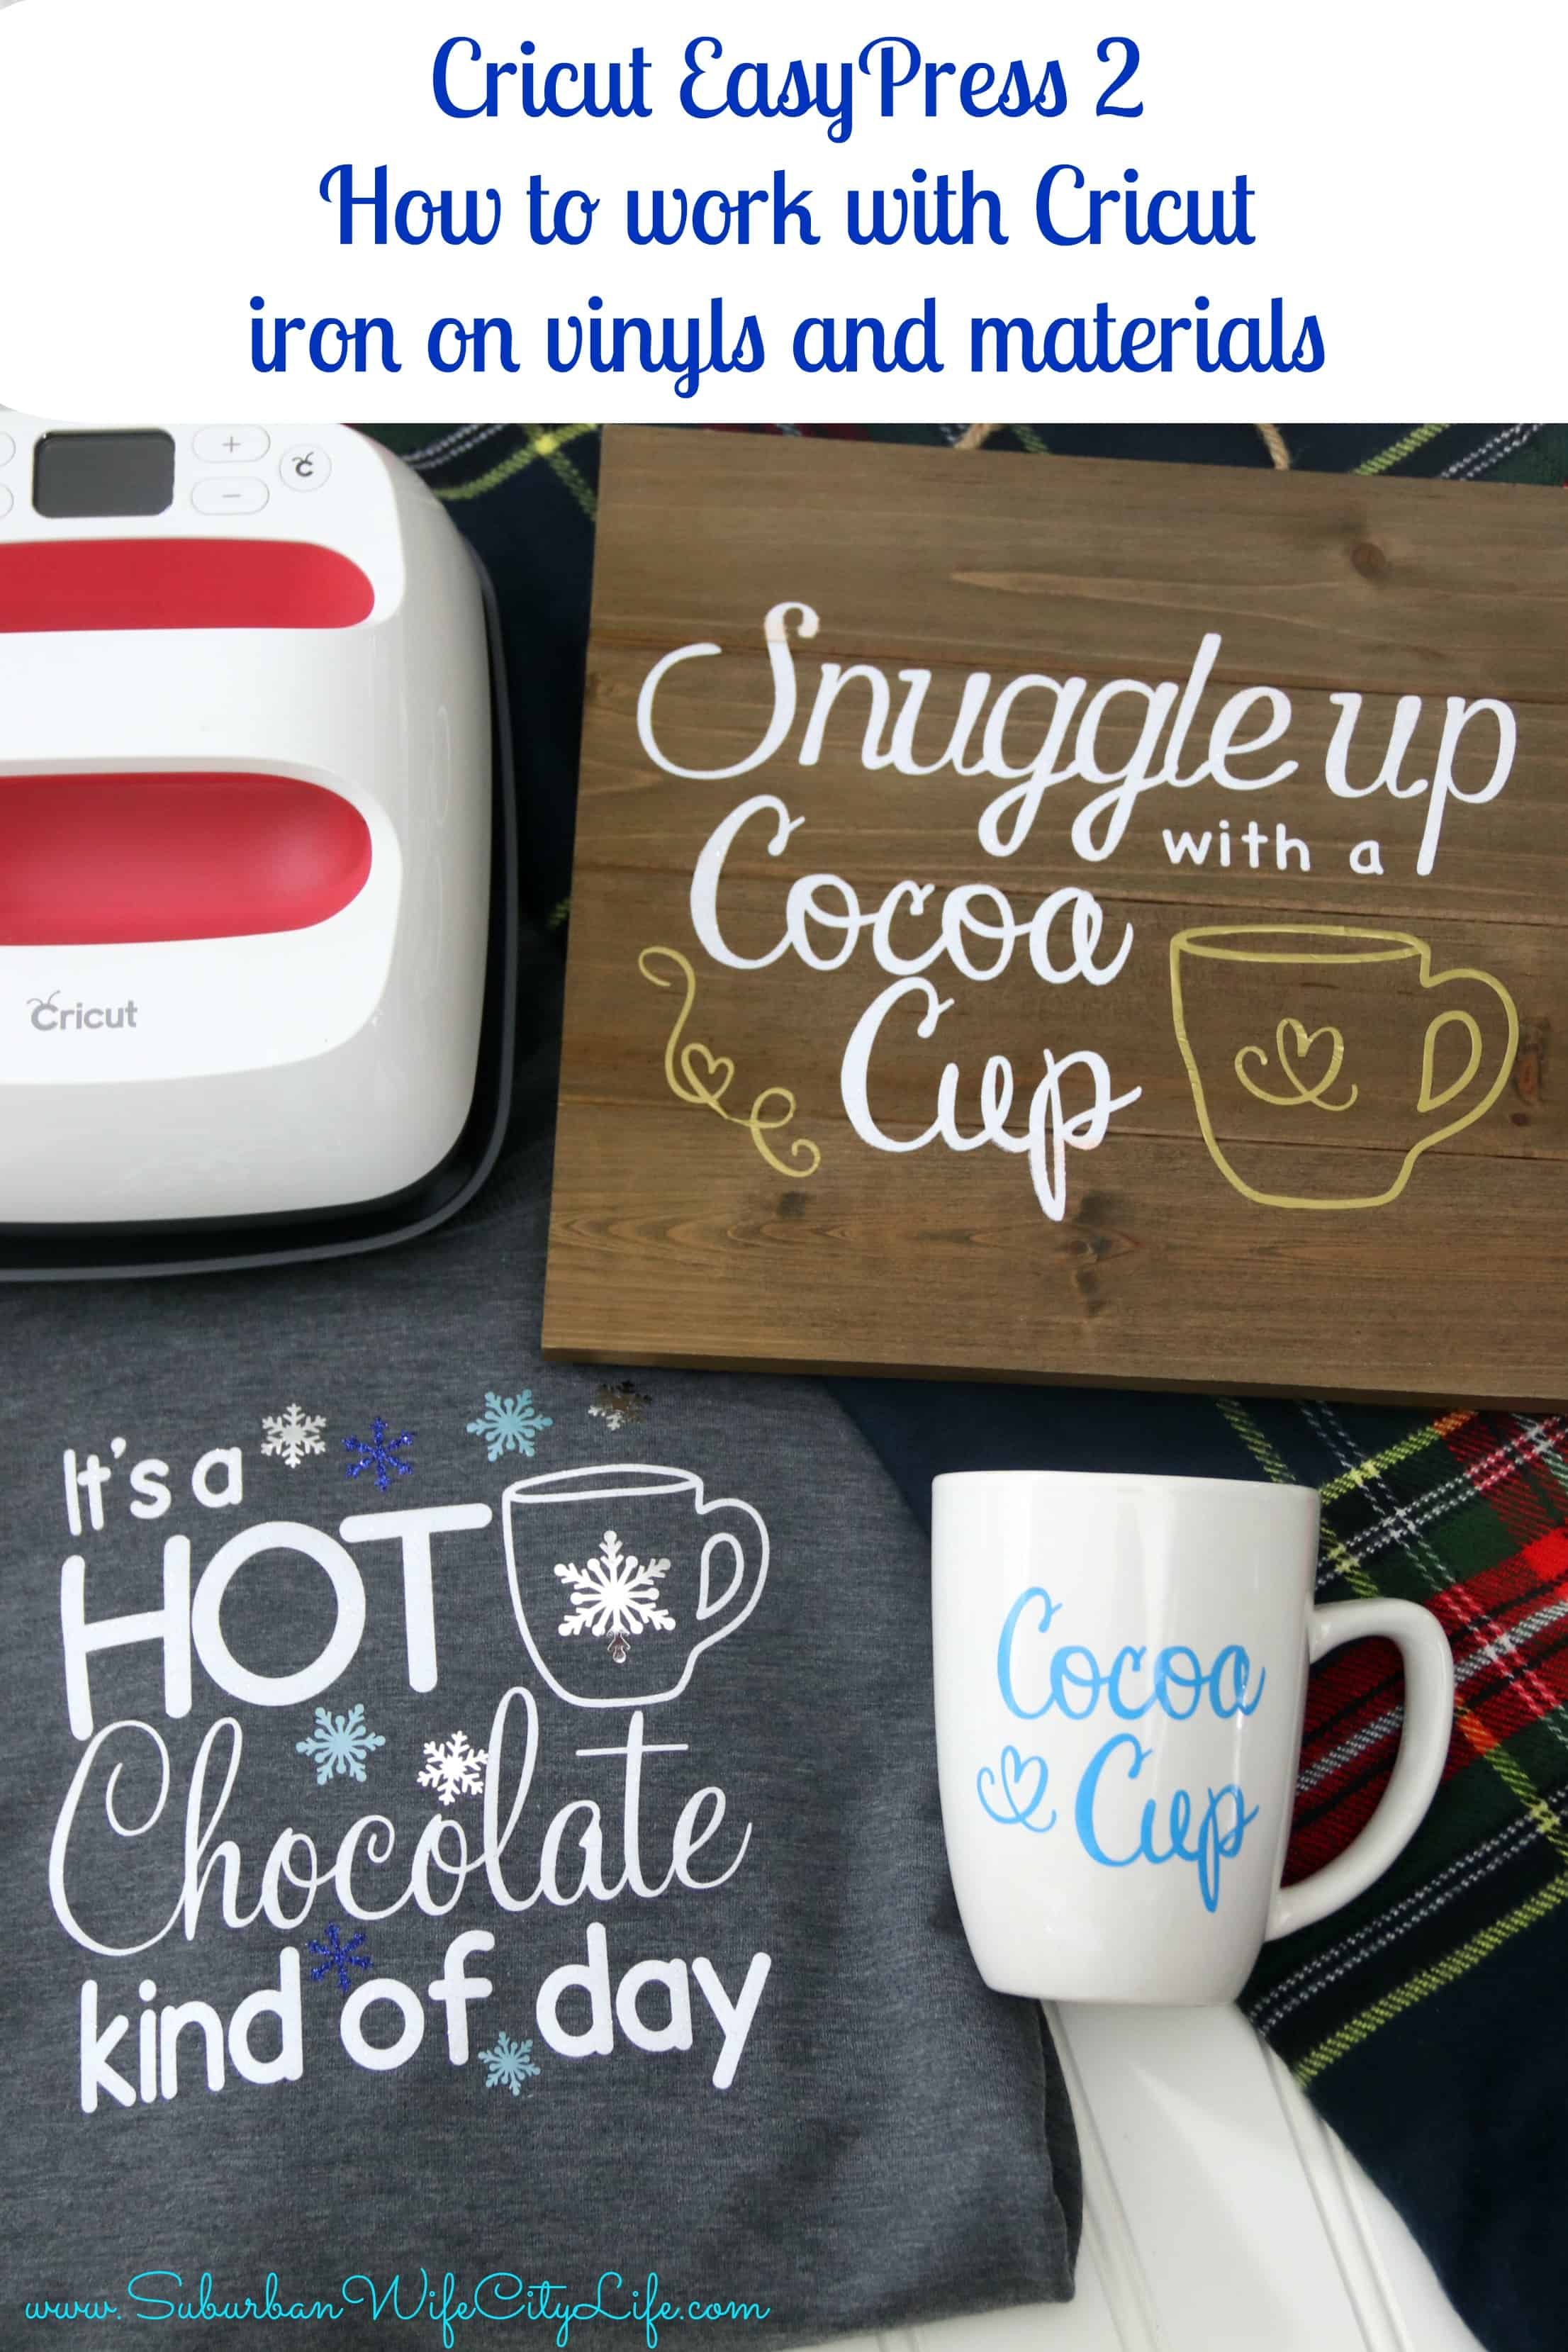 How To Work With Cricut Iron On Vinyls And Materials Easypress2